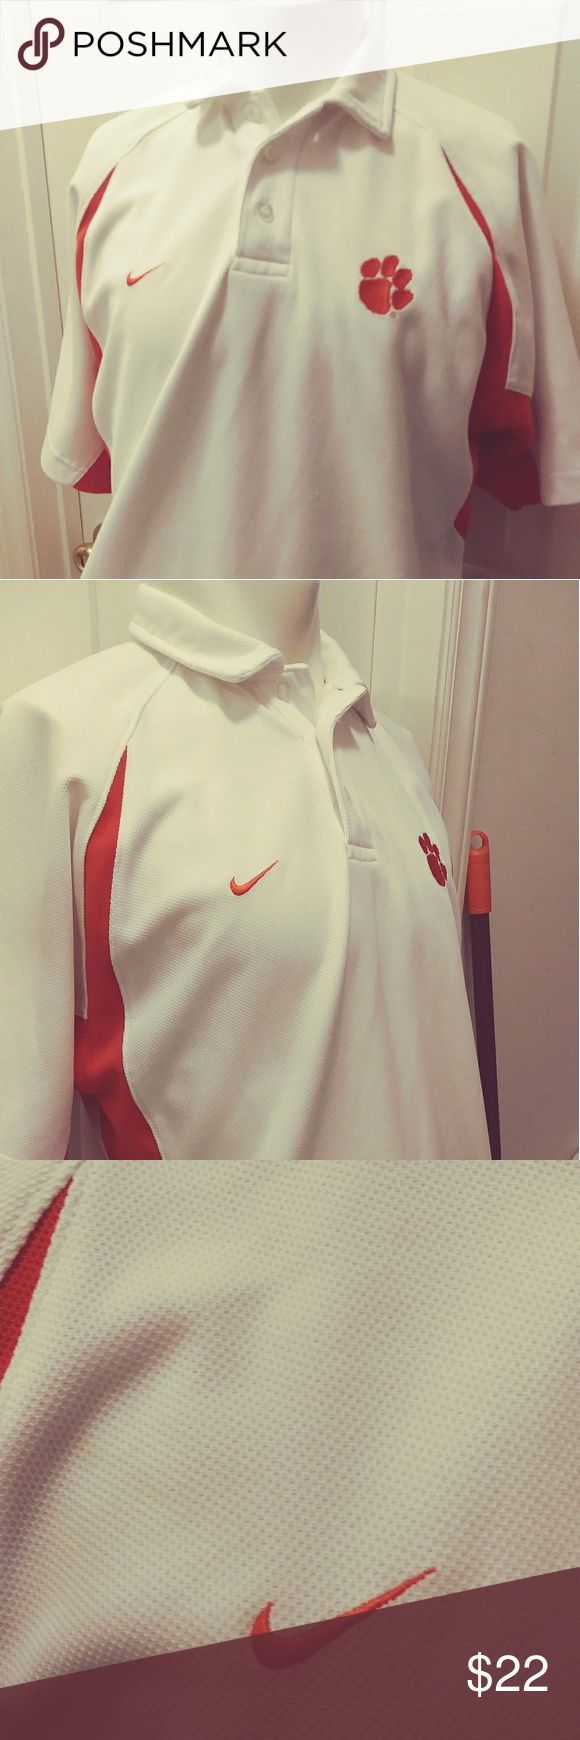 Clemson Nike polo shirt SZ small $22 + free gift Clemson Nike polo shirt SZ small $22 + free gift any item in this closet priced $15 or less. Bundle the two items send me an offer for the price of the Clemson polo shirt and I will accept it. Nike Clemson Polo Shirts Polos